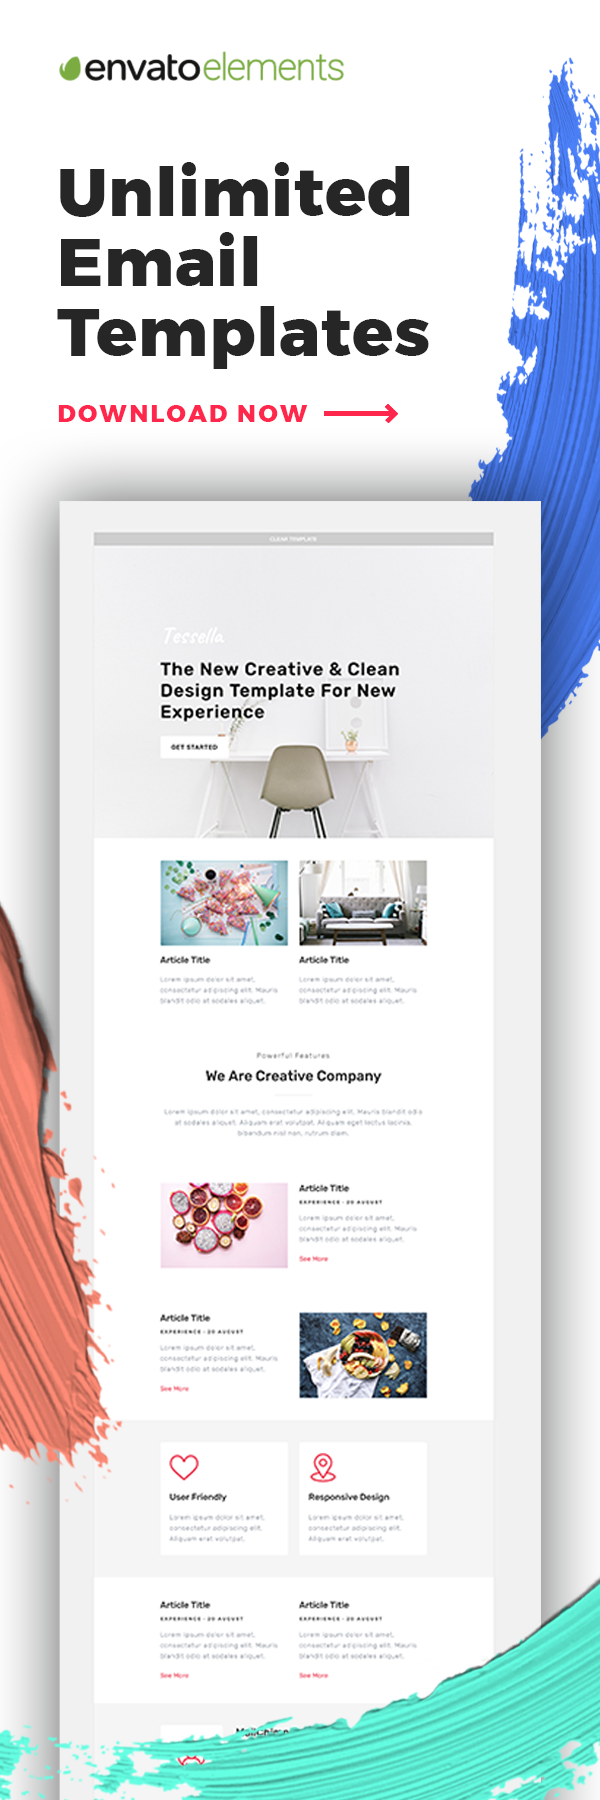 Unlimited Downloads Of The Best Email Templates With Envato Elements Email Marketing Design Email Marketing Inspiration Email Marketing Template